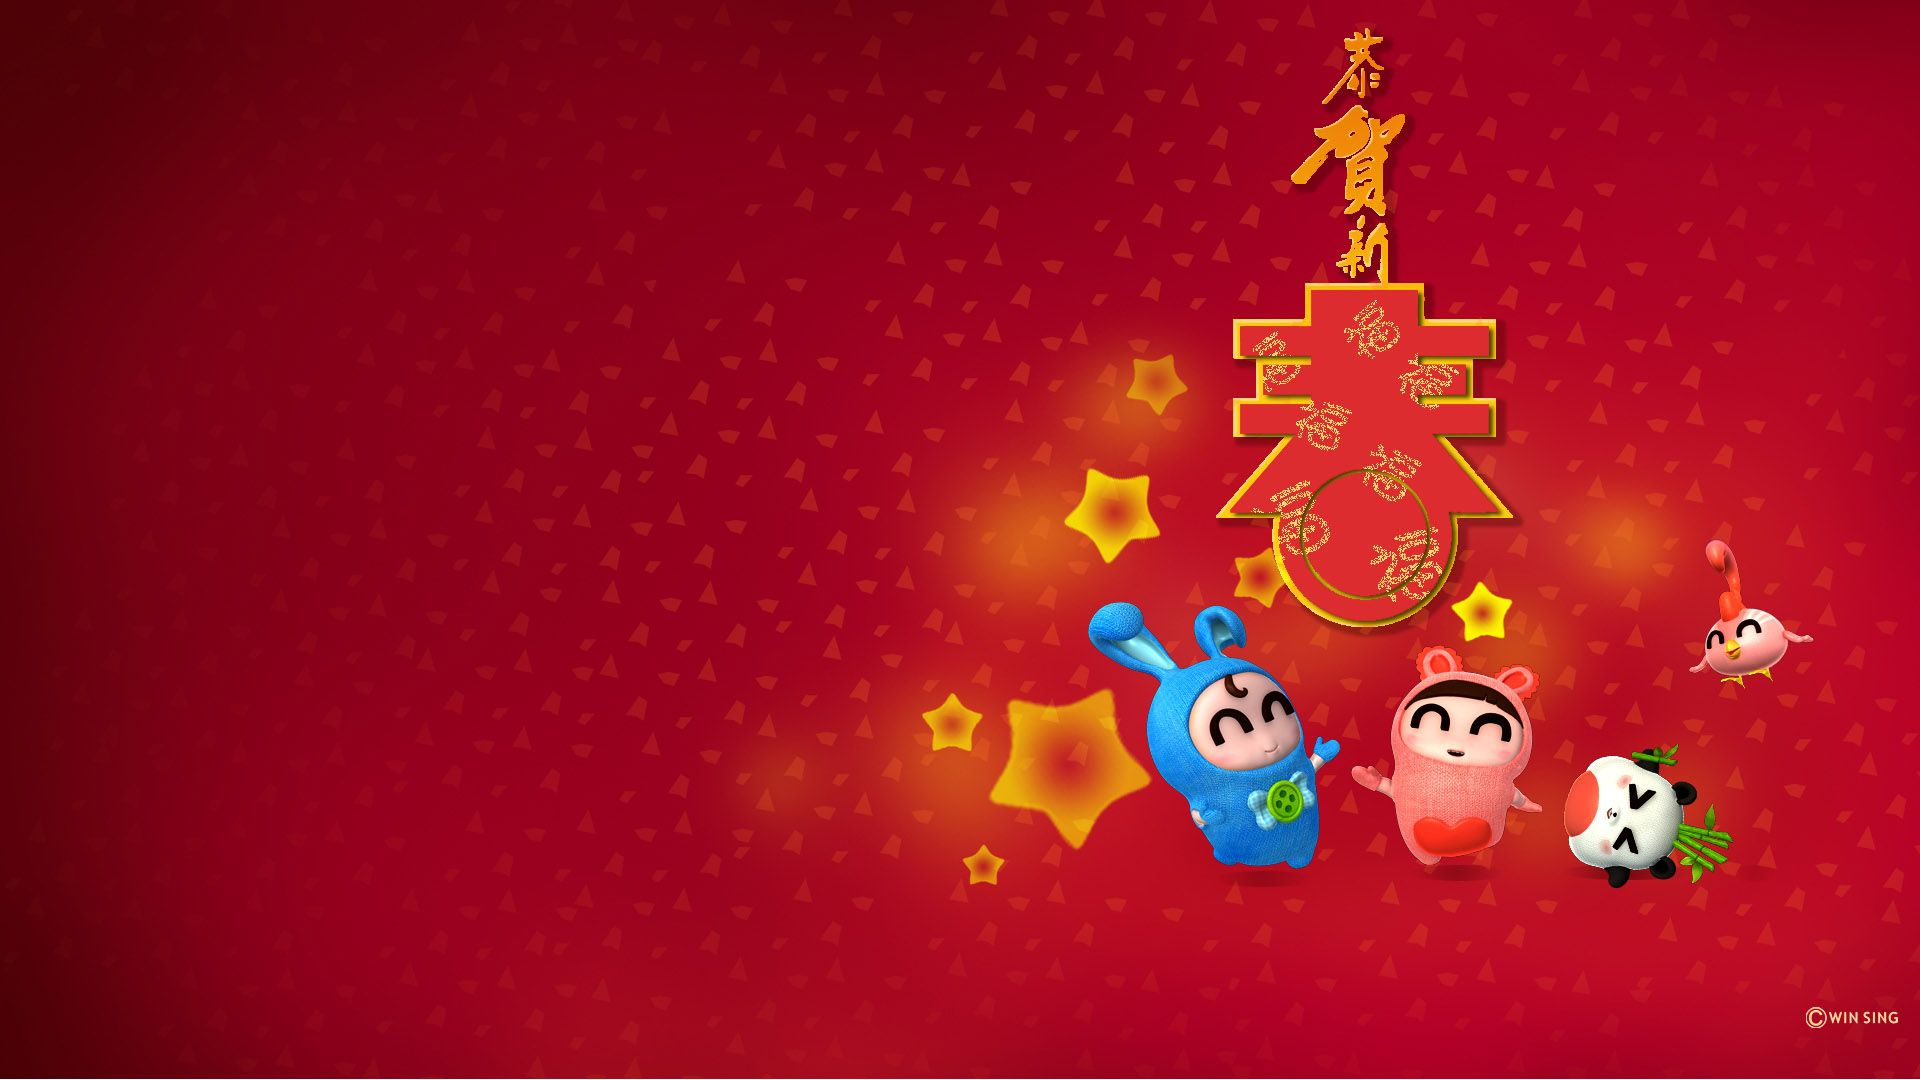 Lunar New Year Wallpapers 24 1920x1080